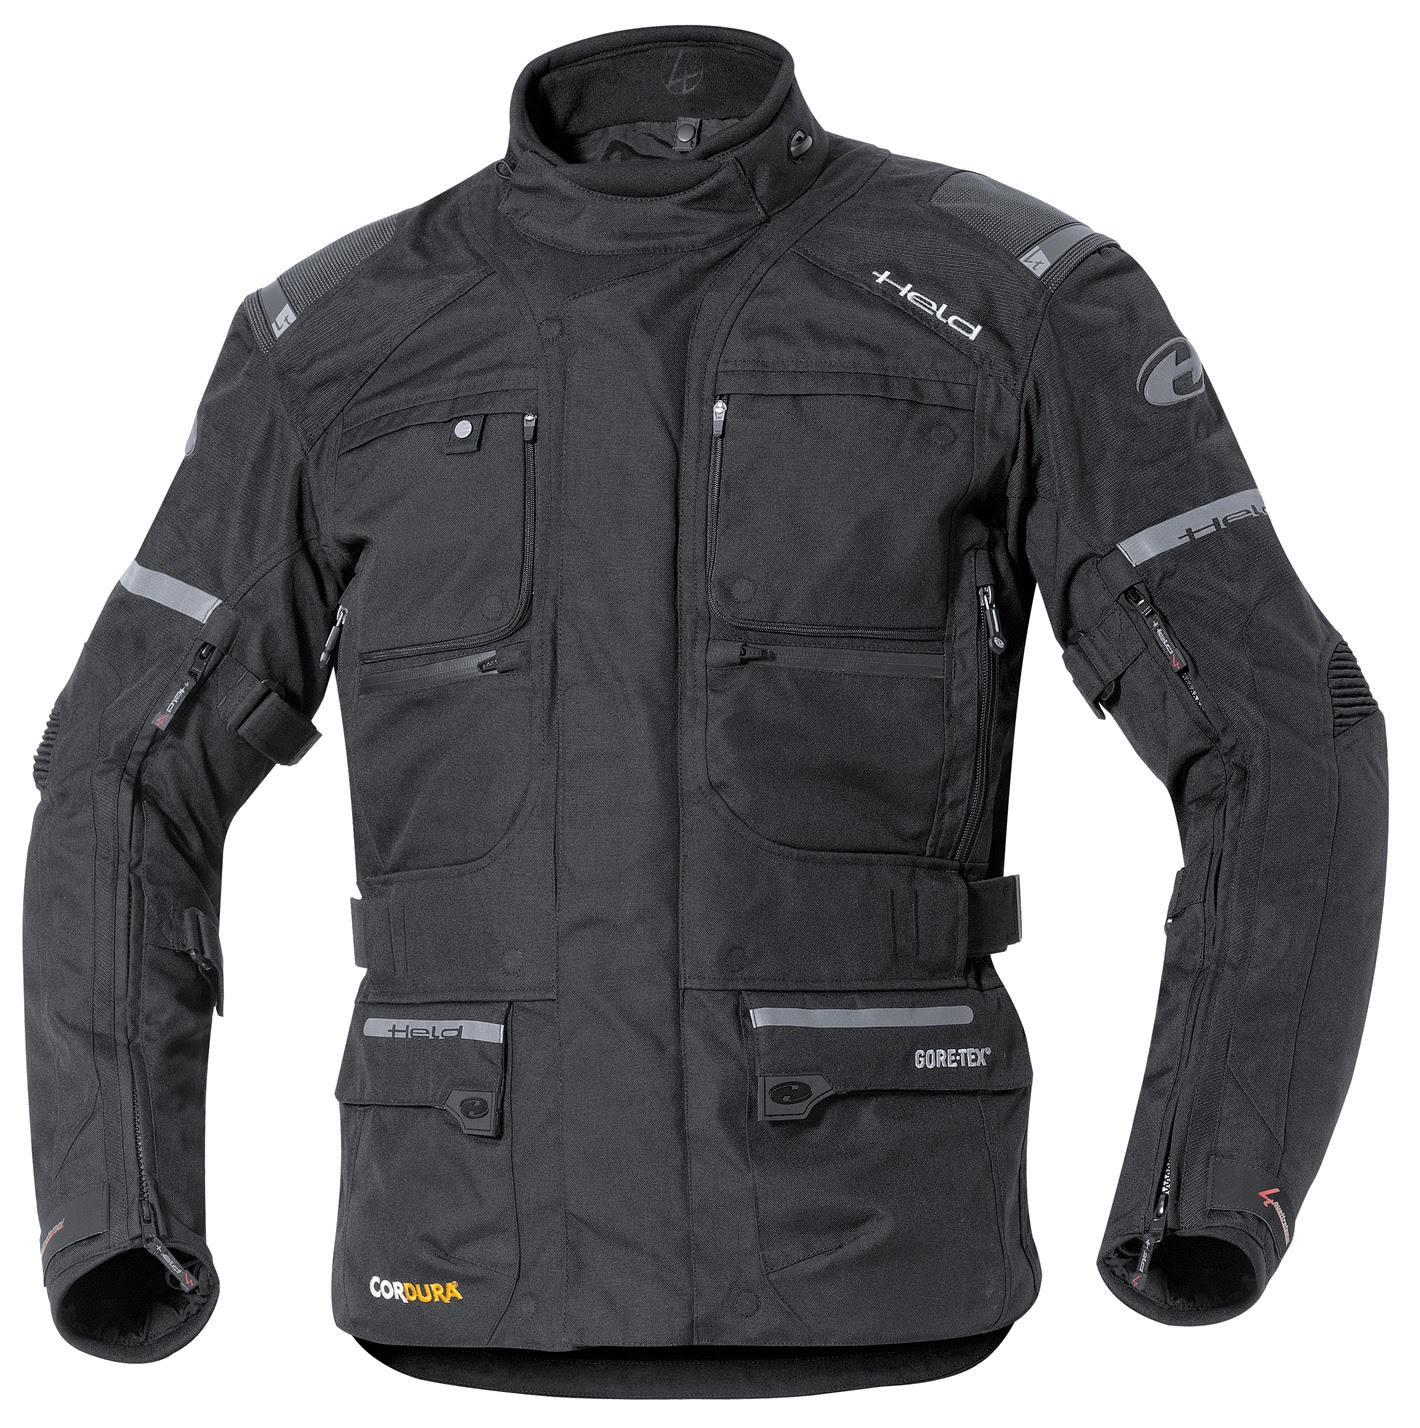 Held make the best Gore-Tex motorcycle jackets